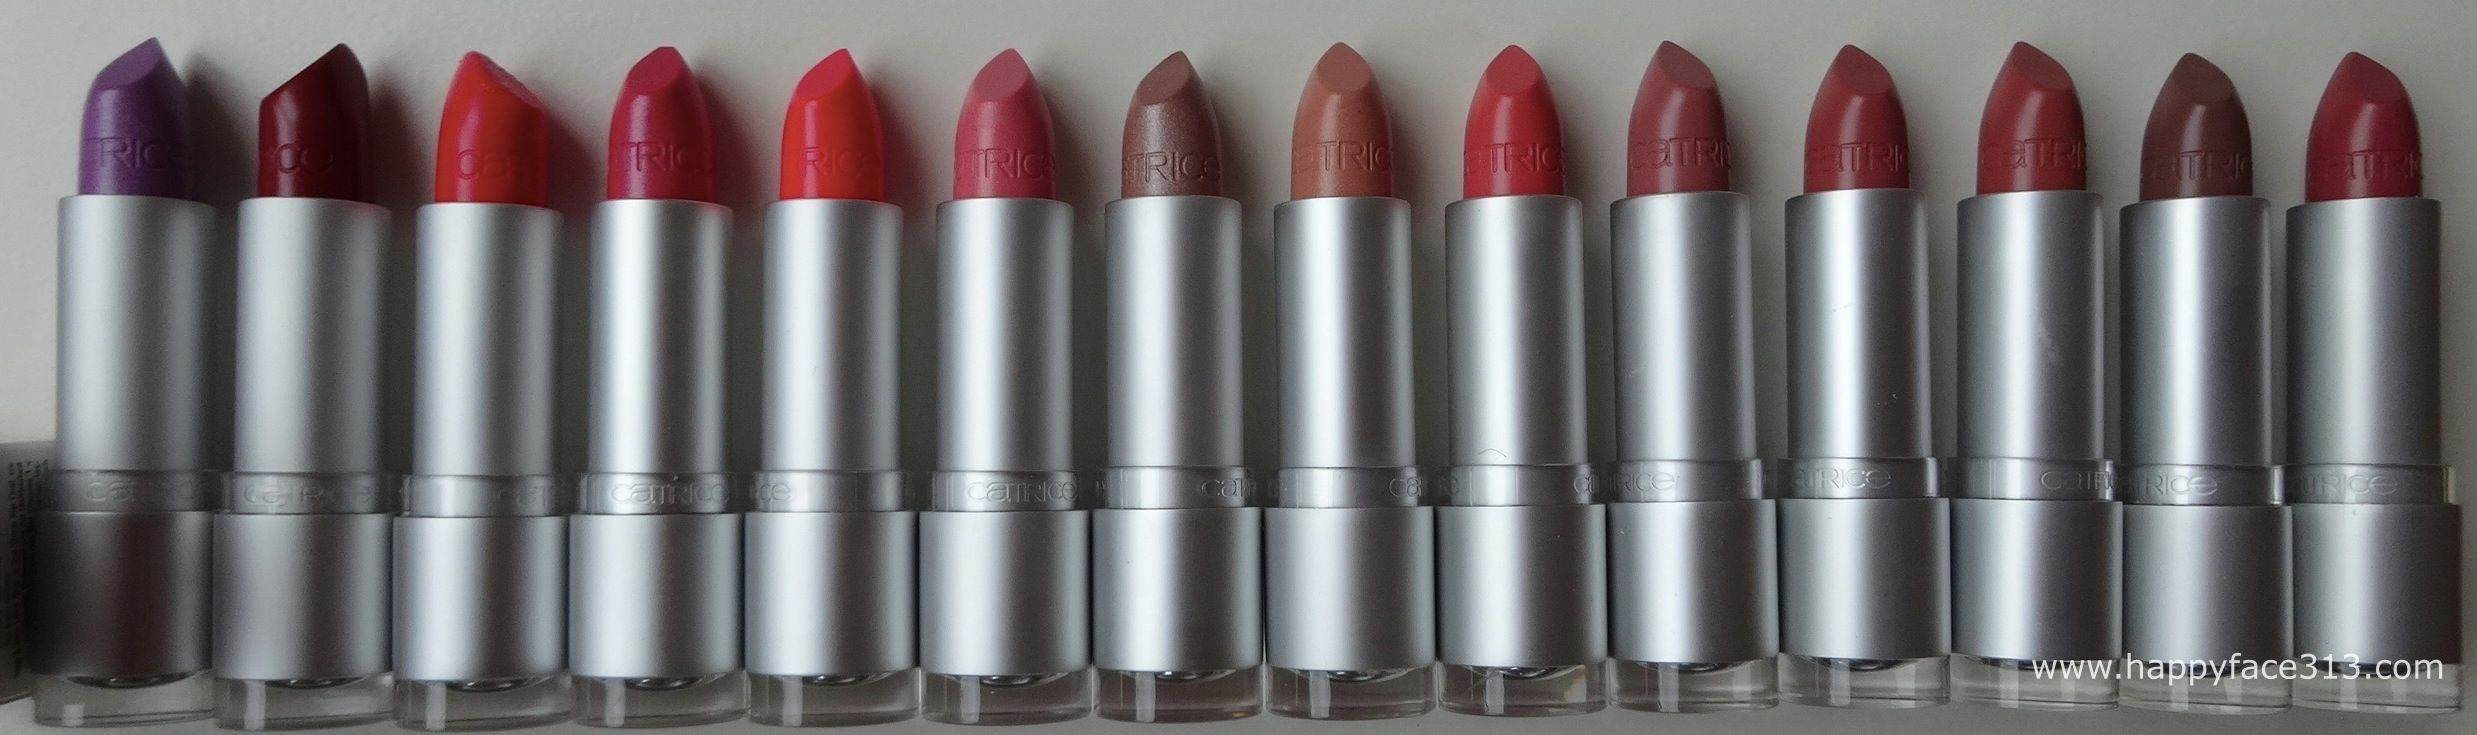 Catrice Luminous Lips Lipsticks